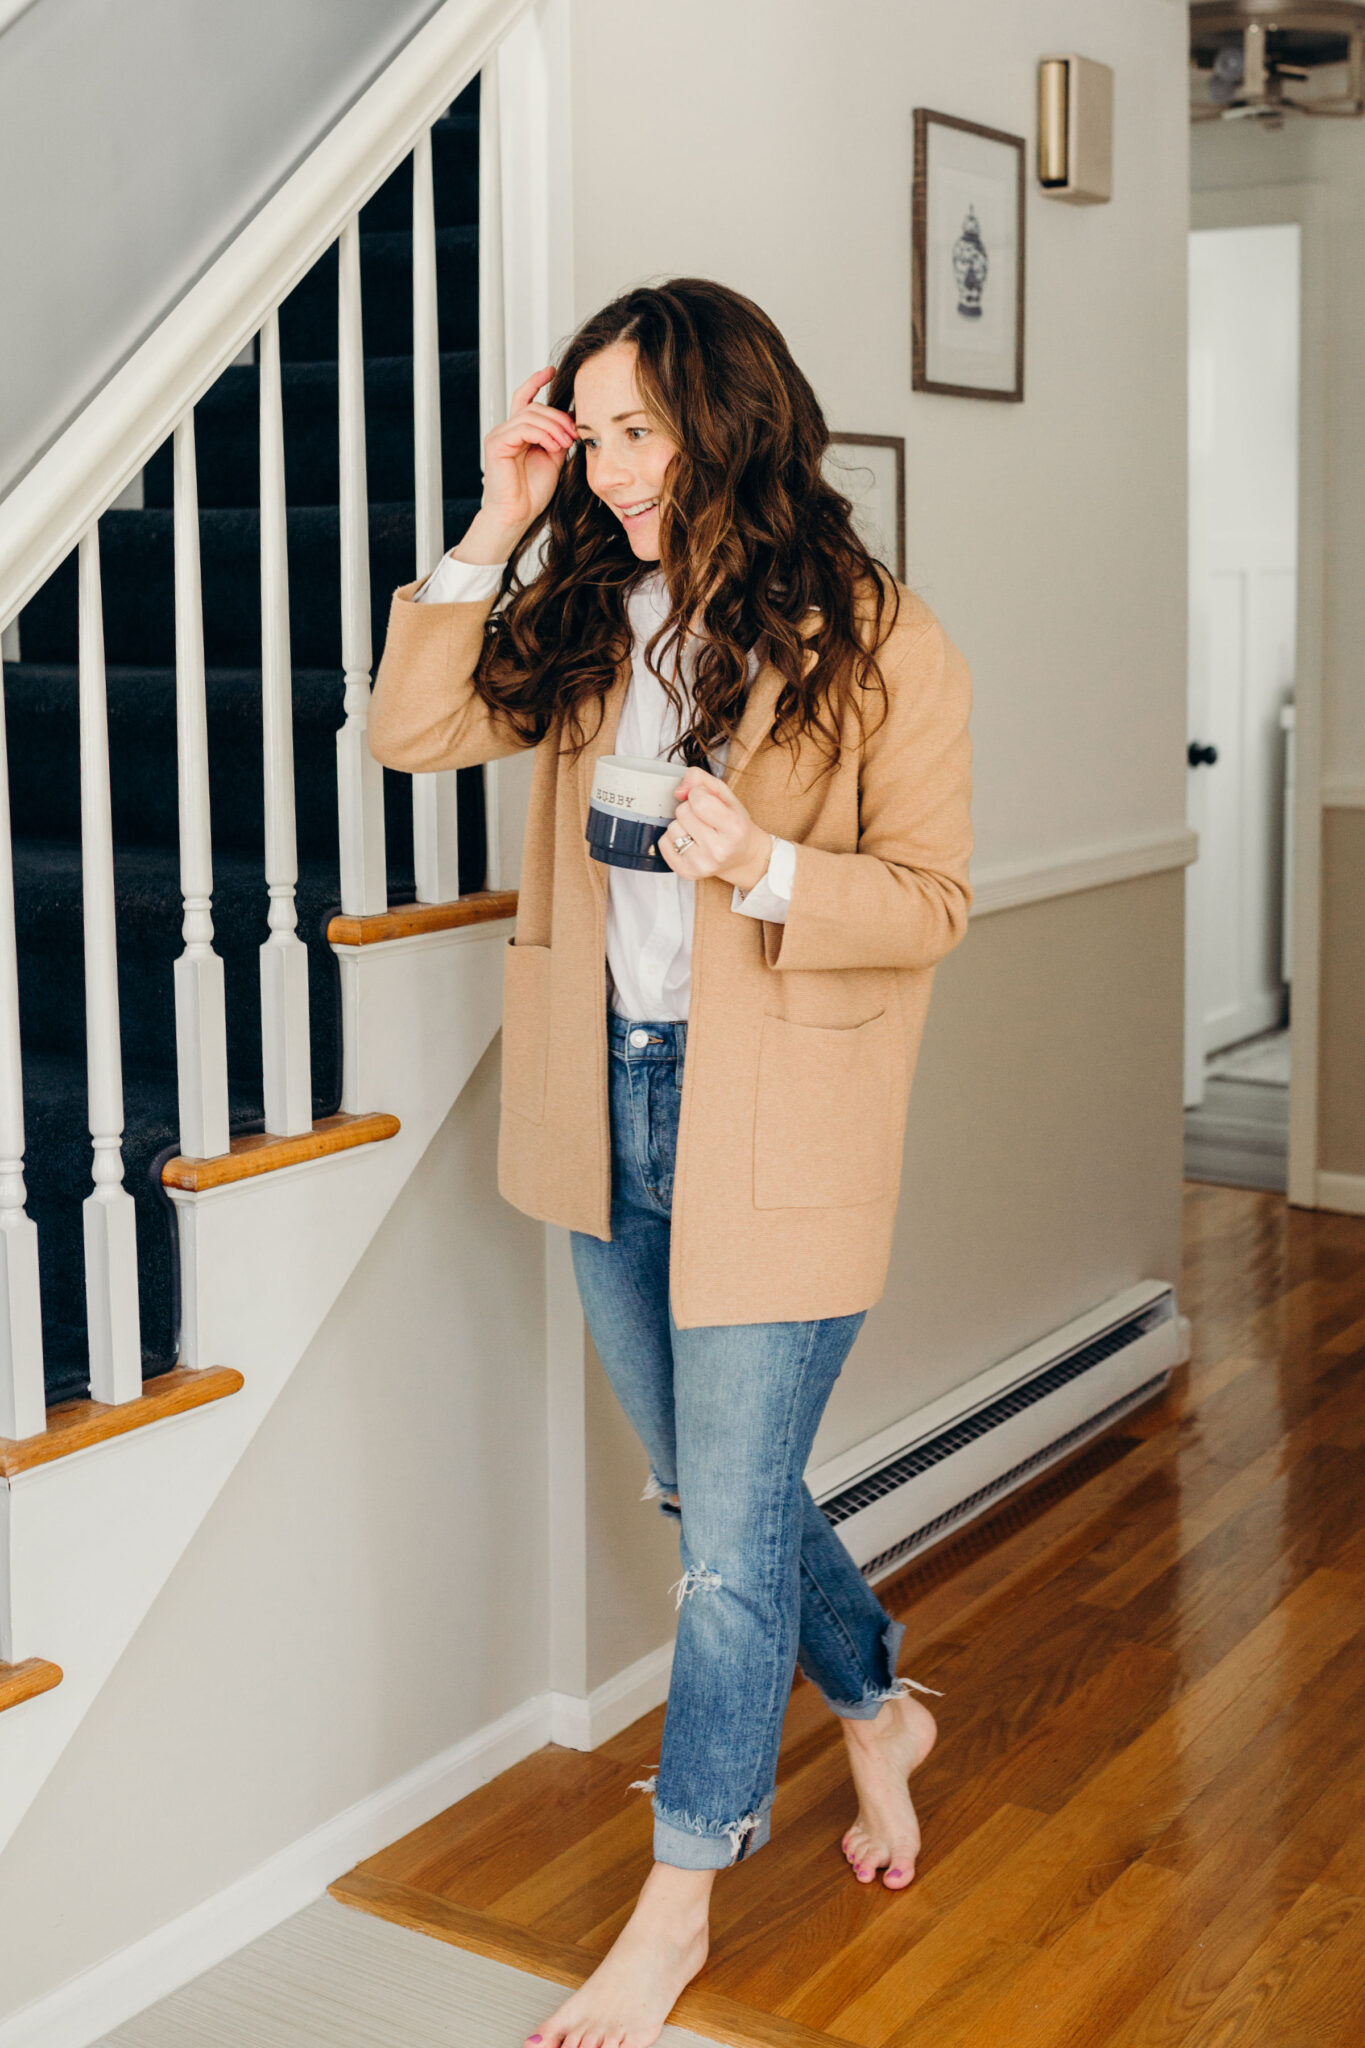 Wardrobe Staples and Items to Splurge On